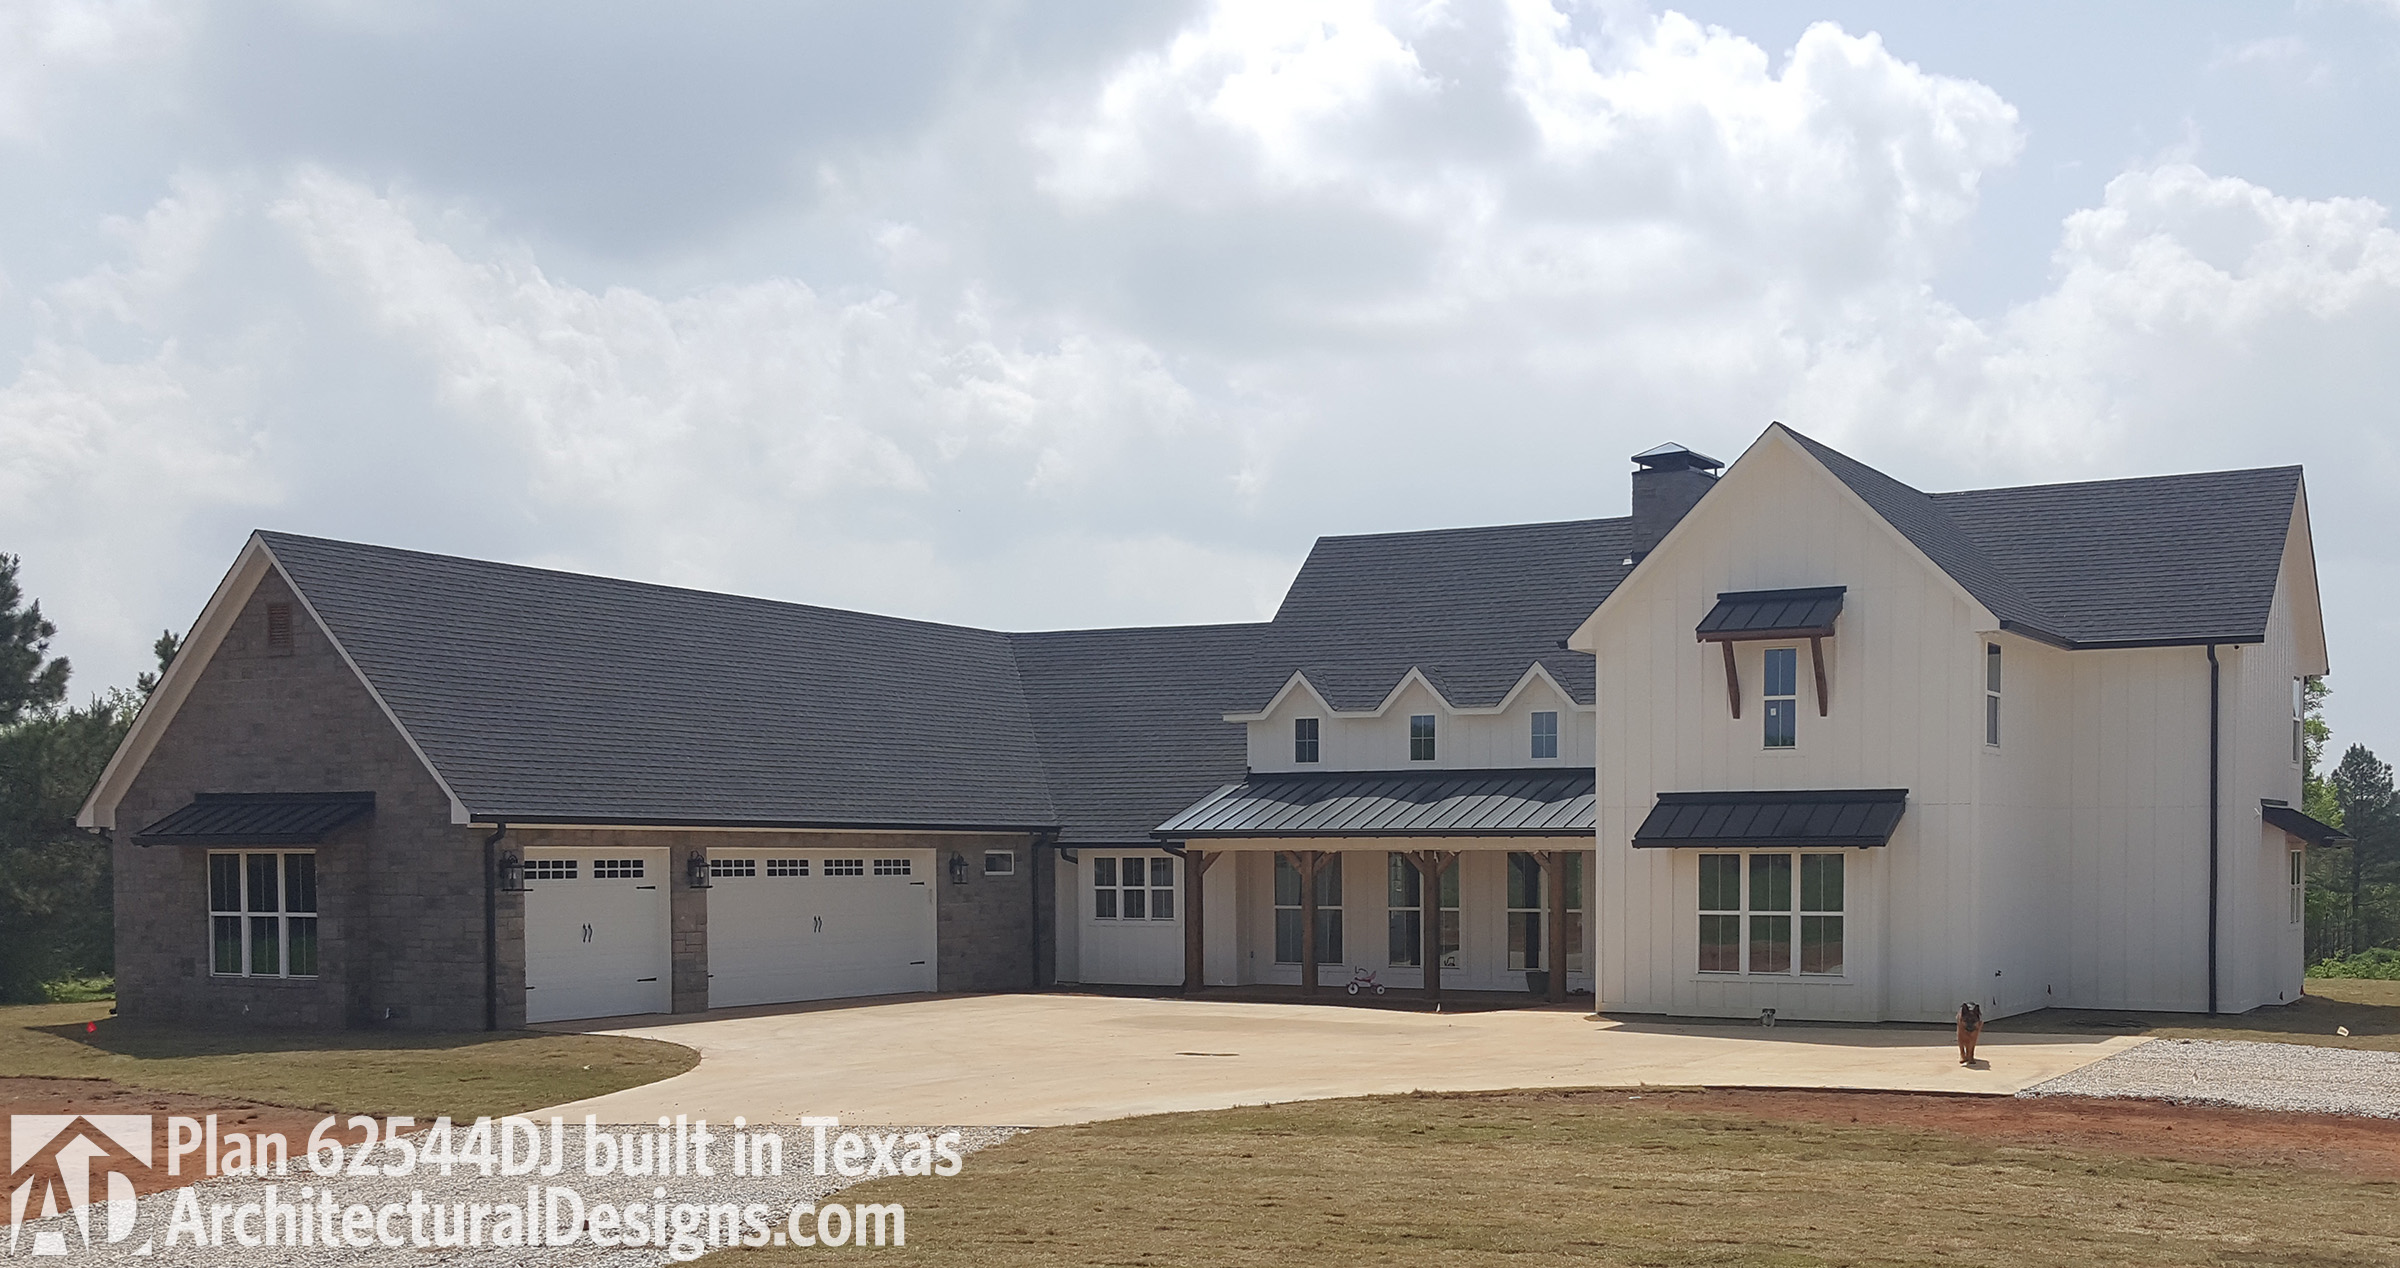 House Plan 62544DJ Built In Texas   Photo 001